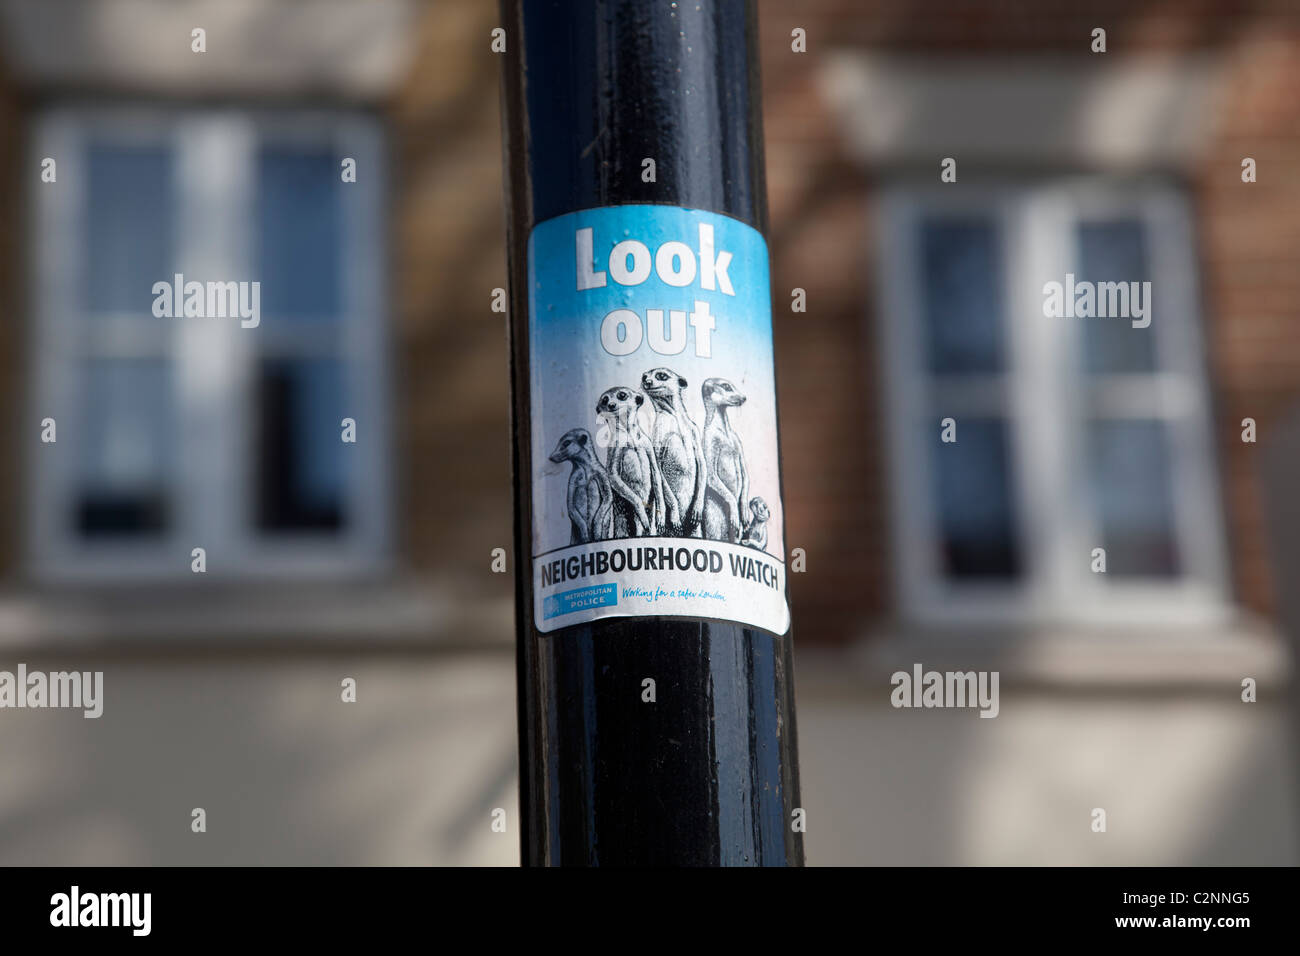 Look out neighbourhood watch sign on post - Stock Image